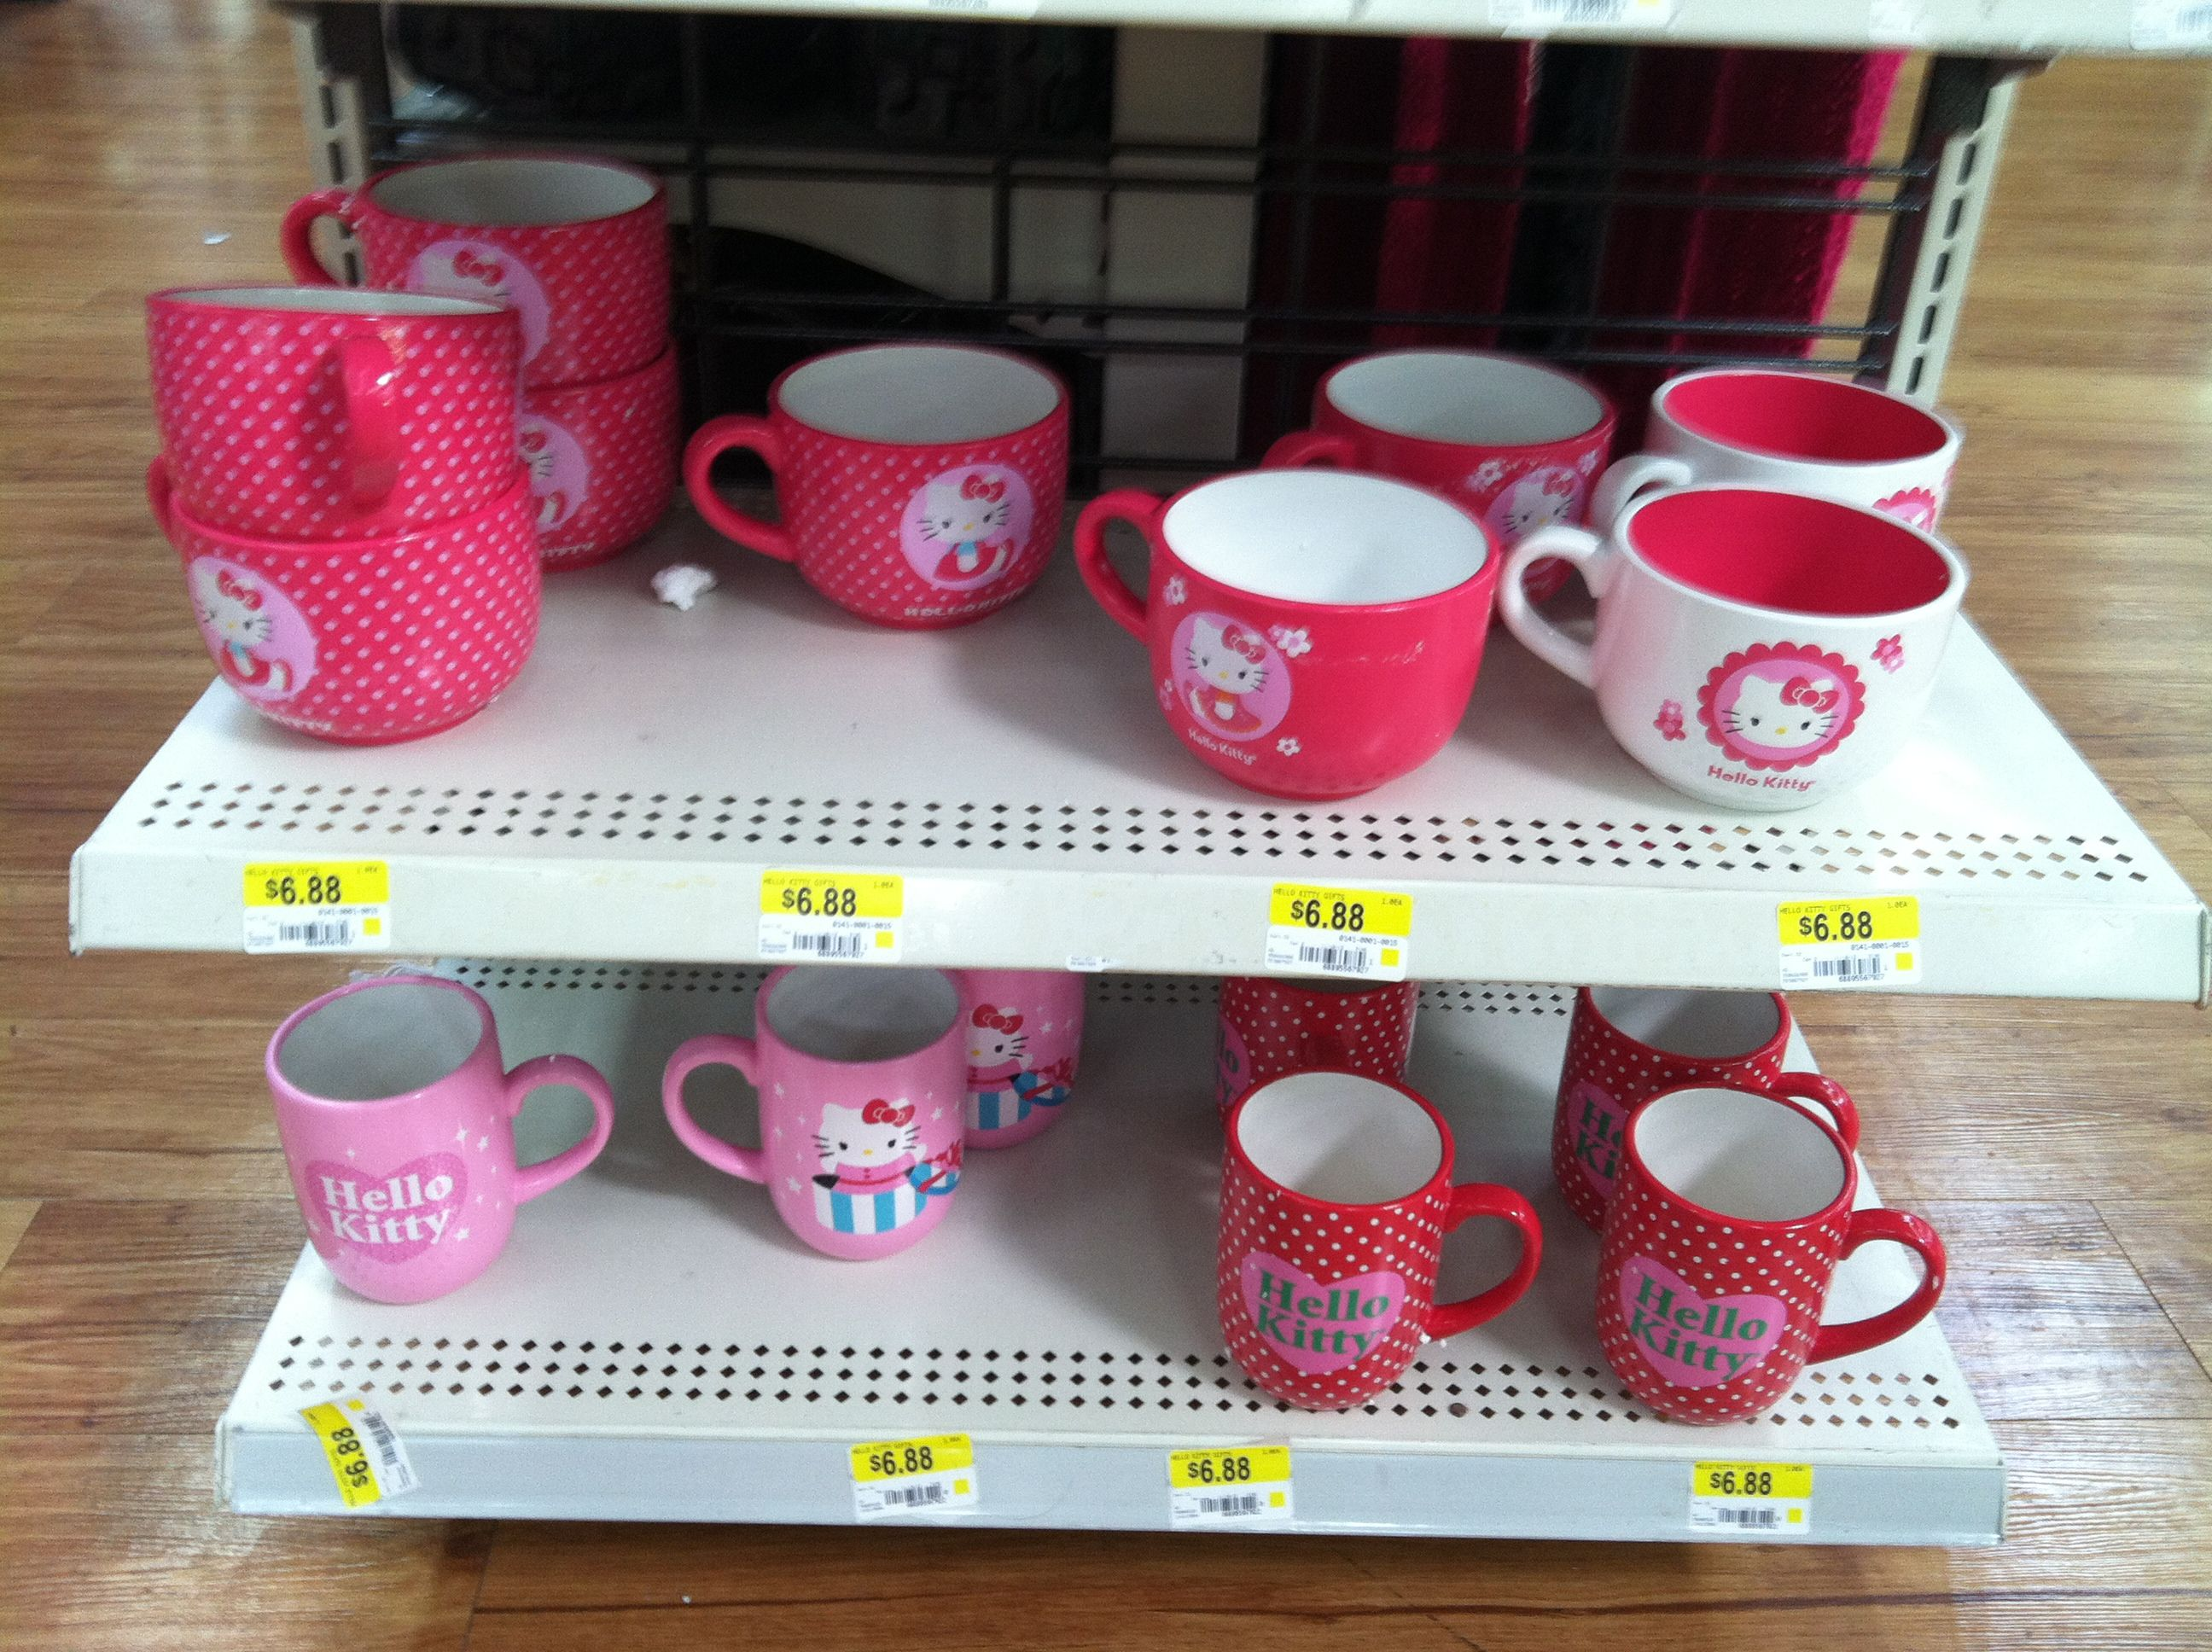 Mugs Hello Hello Mugs WalmartWishlist Kitty WalmartWishlist Hello Kitty Mug Mug hsrtQd